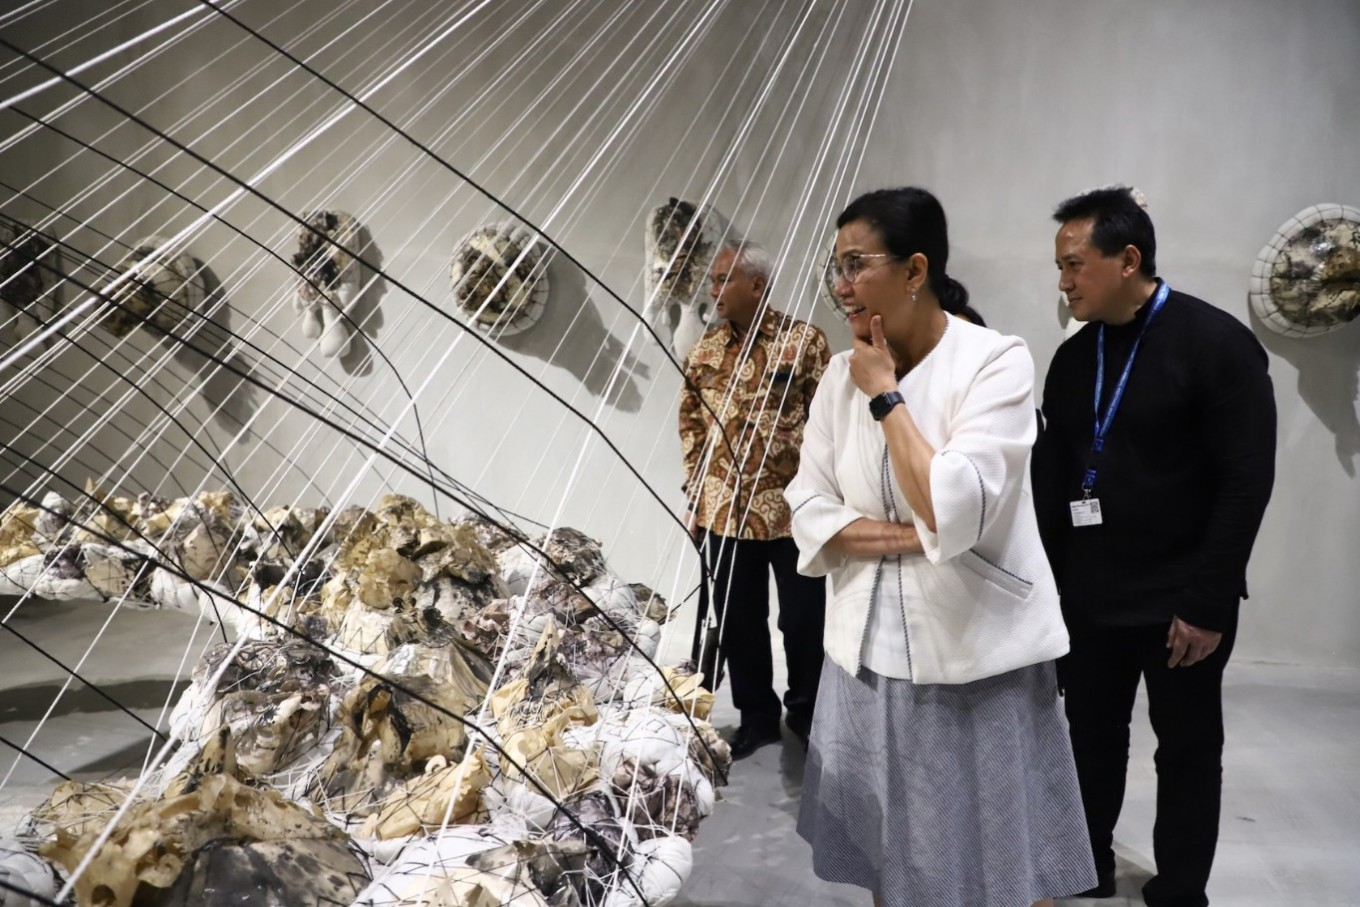 Finance Minister Sri Mulyani and Bekraf head Triawan Munaf admire artworks at Art Bali.